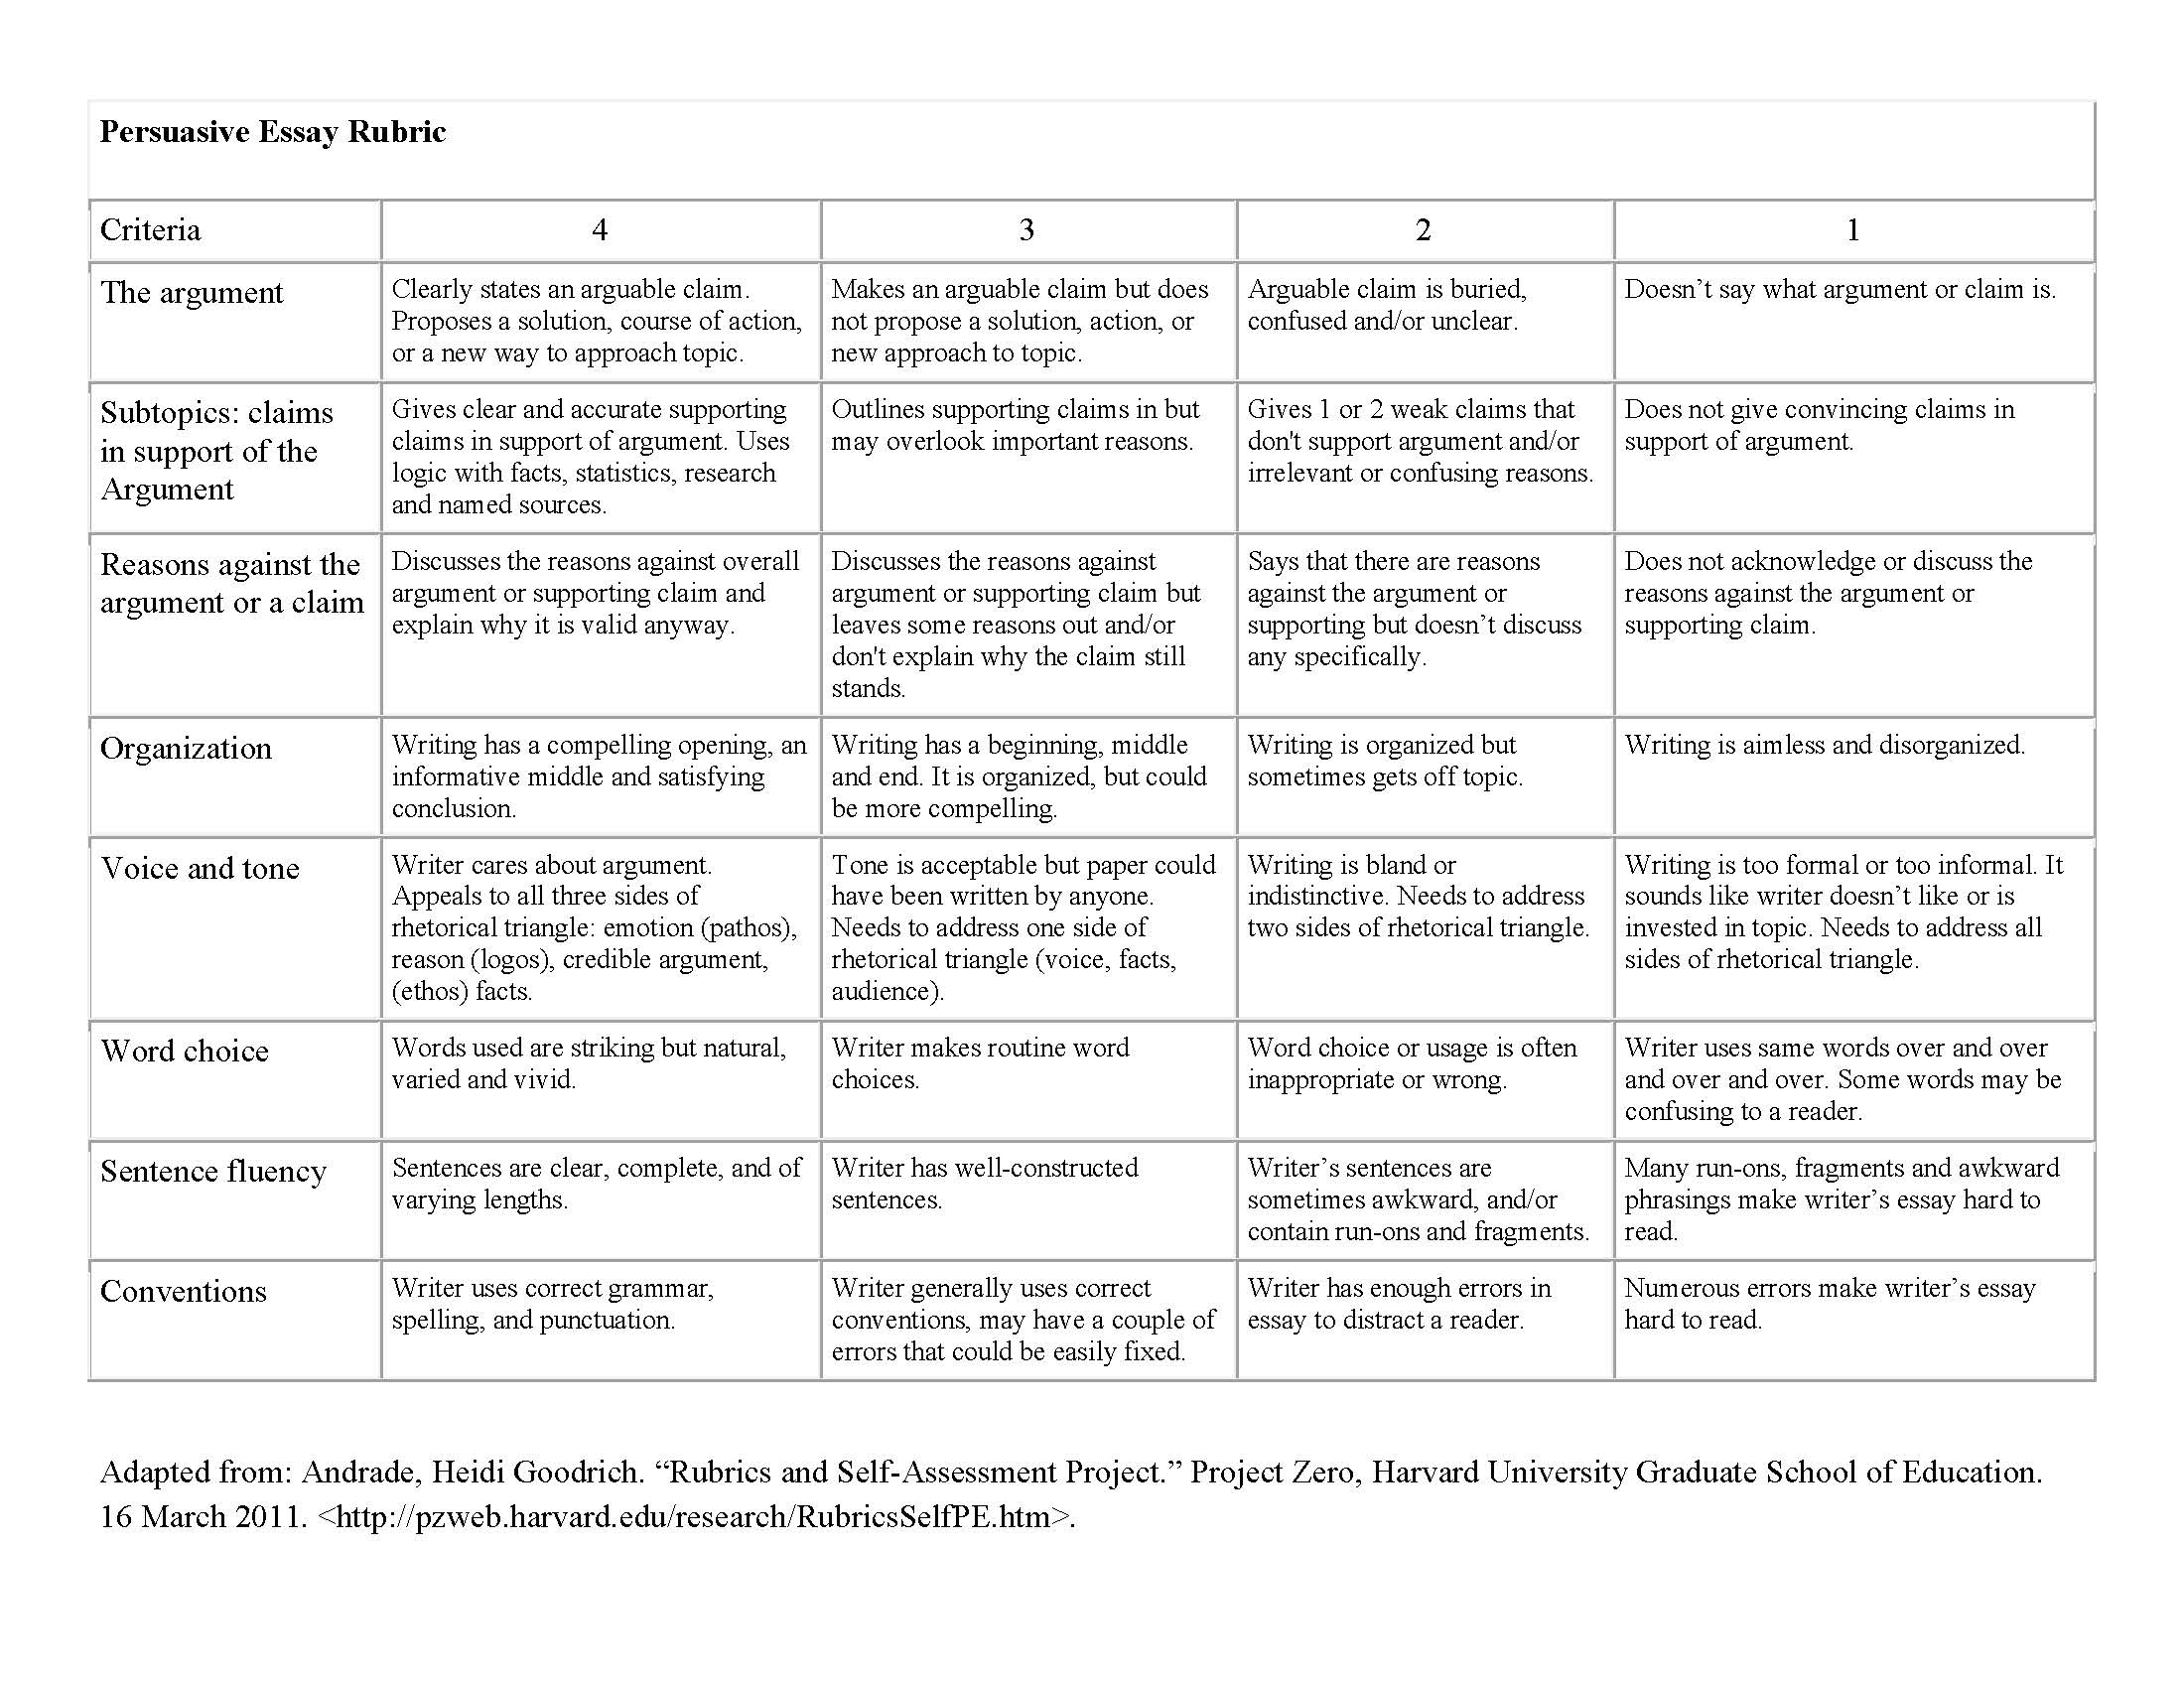 Persuasive Techniques In Essays Handout Persuasive Essay Rubric Persuasive Techniques In Essays